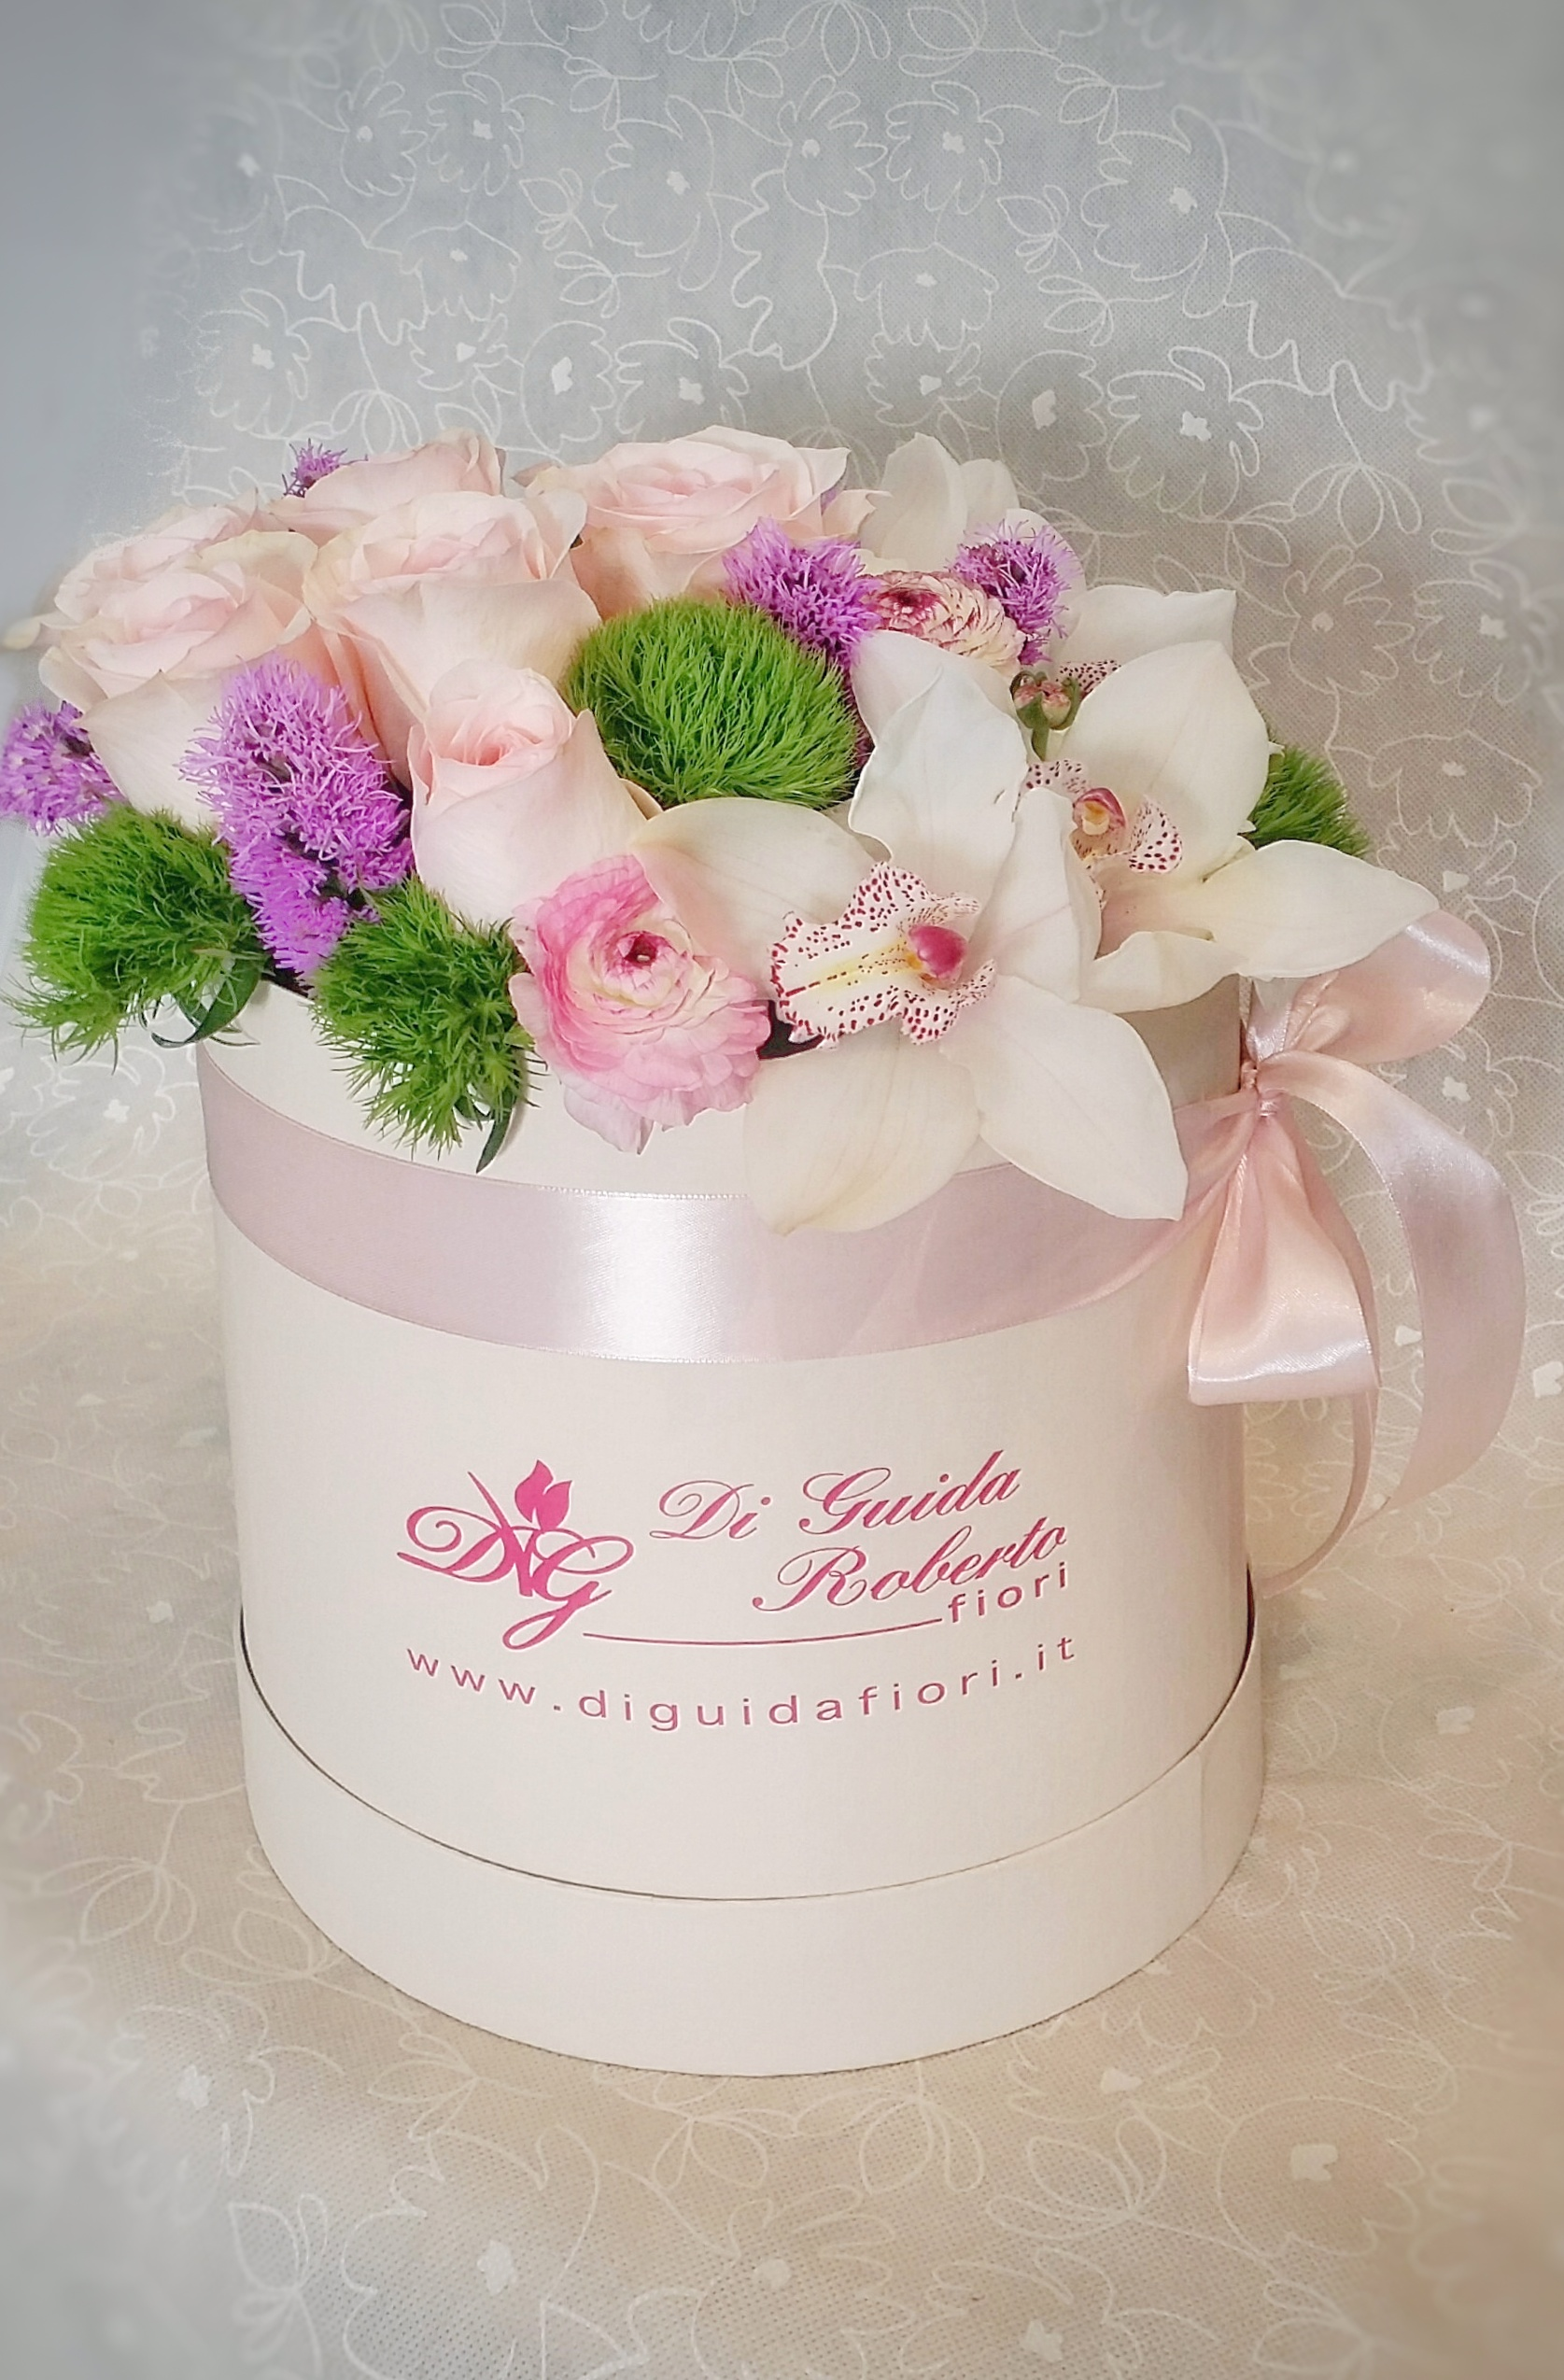 Fiori in scatola – Flowers in a gift box